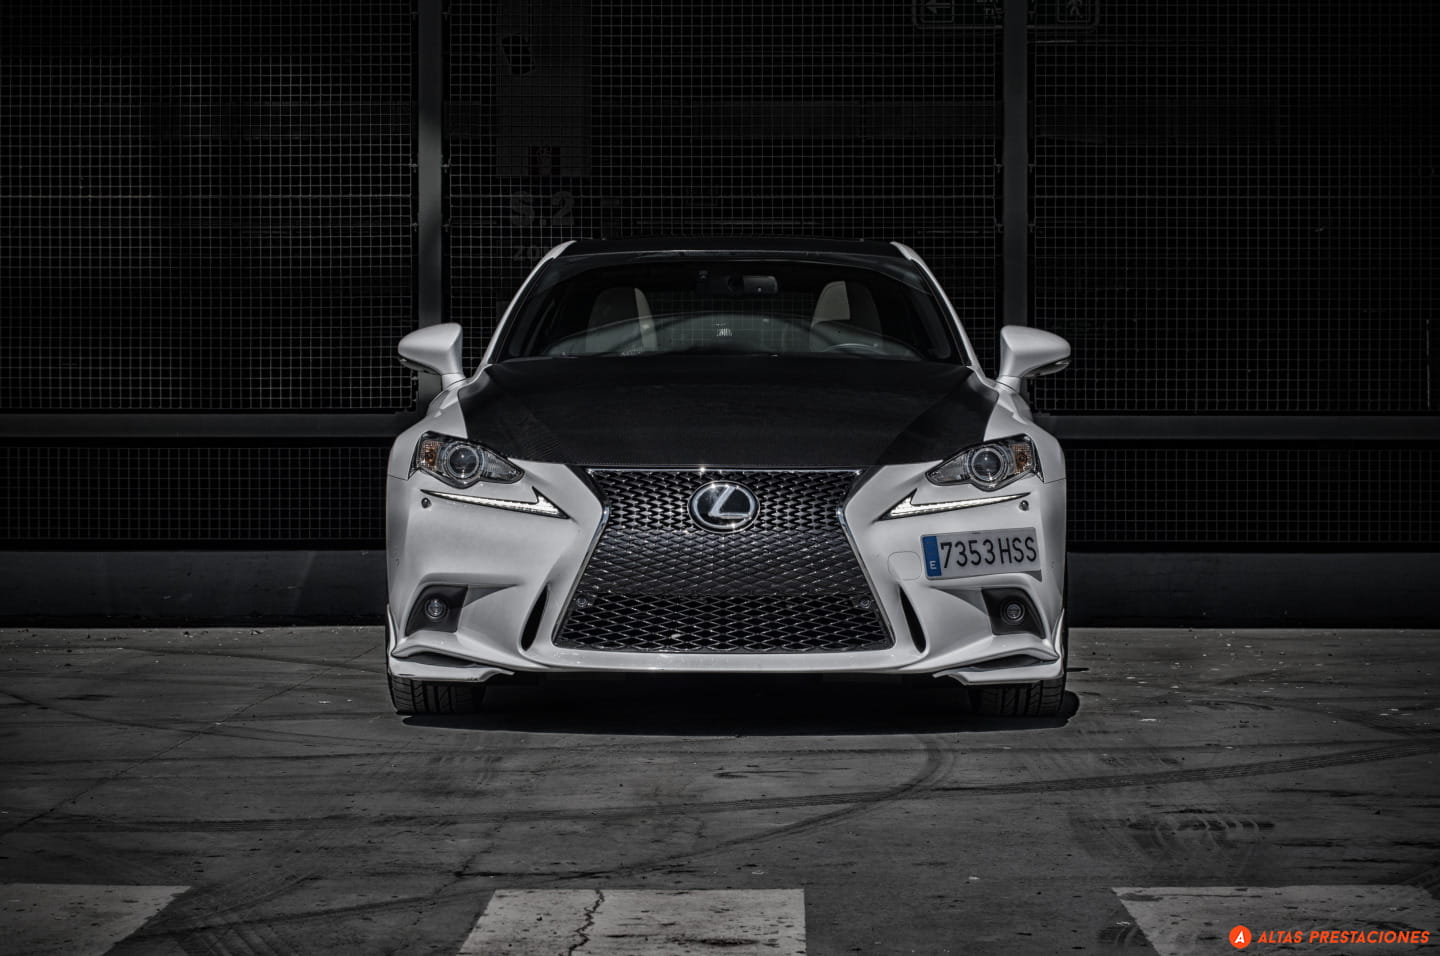 Lexus_IS_25_aniversario_TRD_2015_DM_mapdm_20